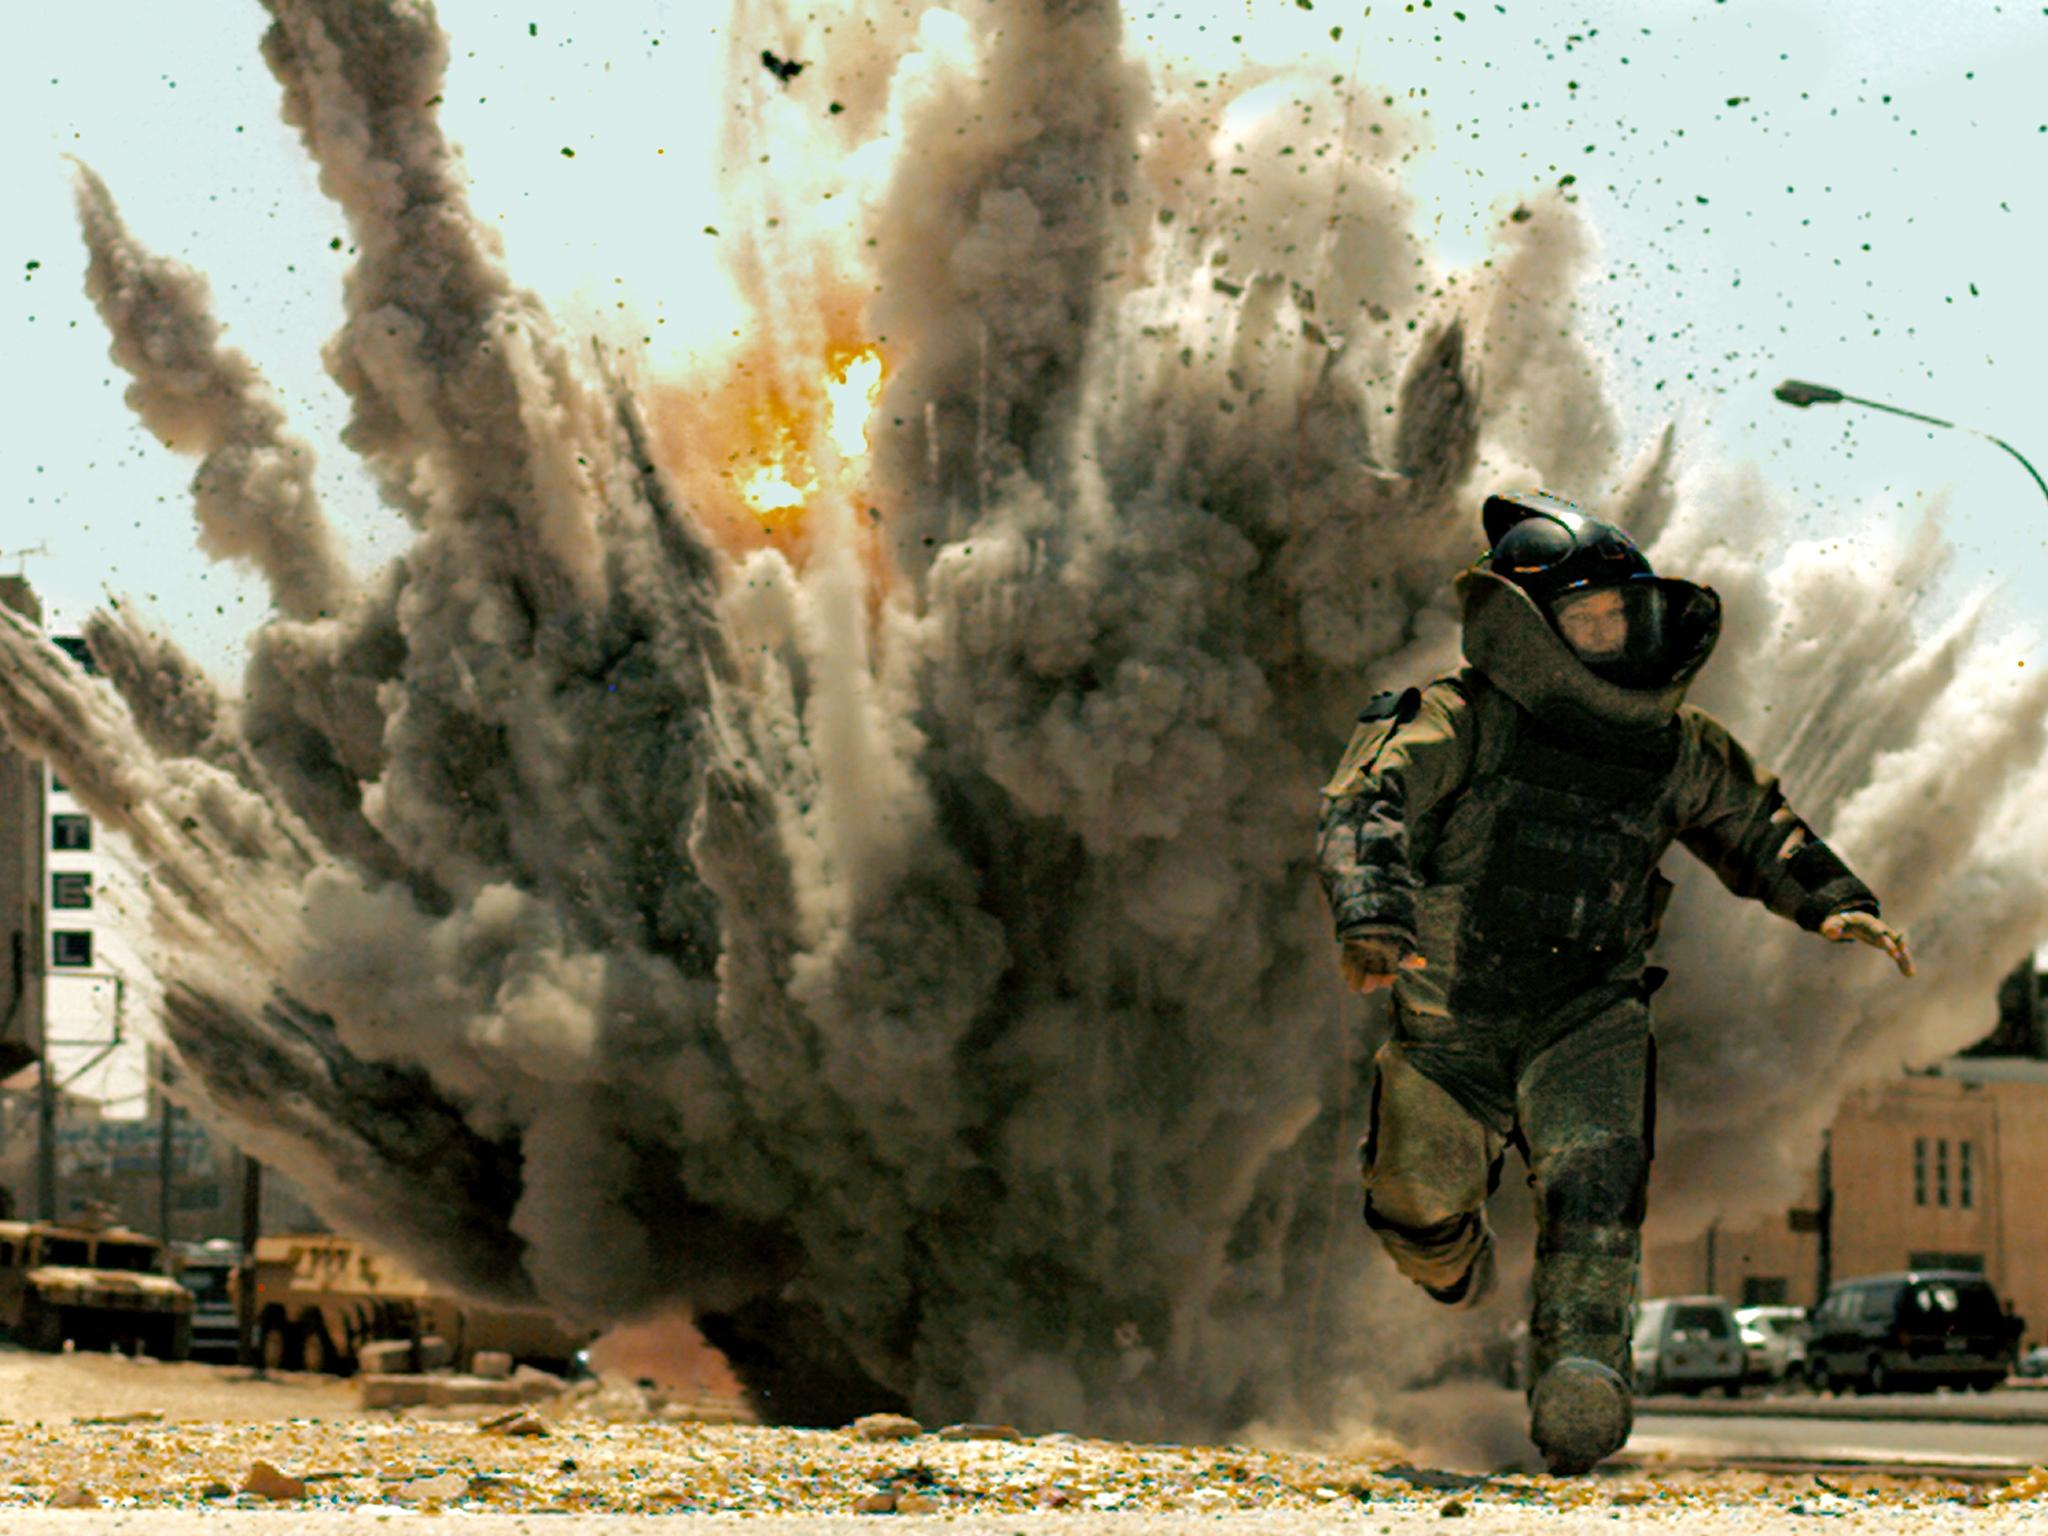 From American Sniper to Timbuktu: how should cinema respond